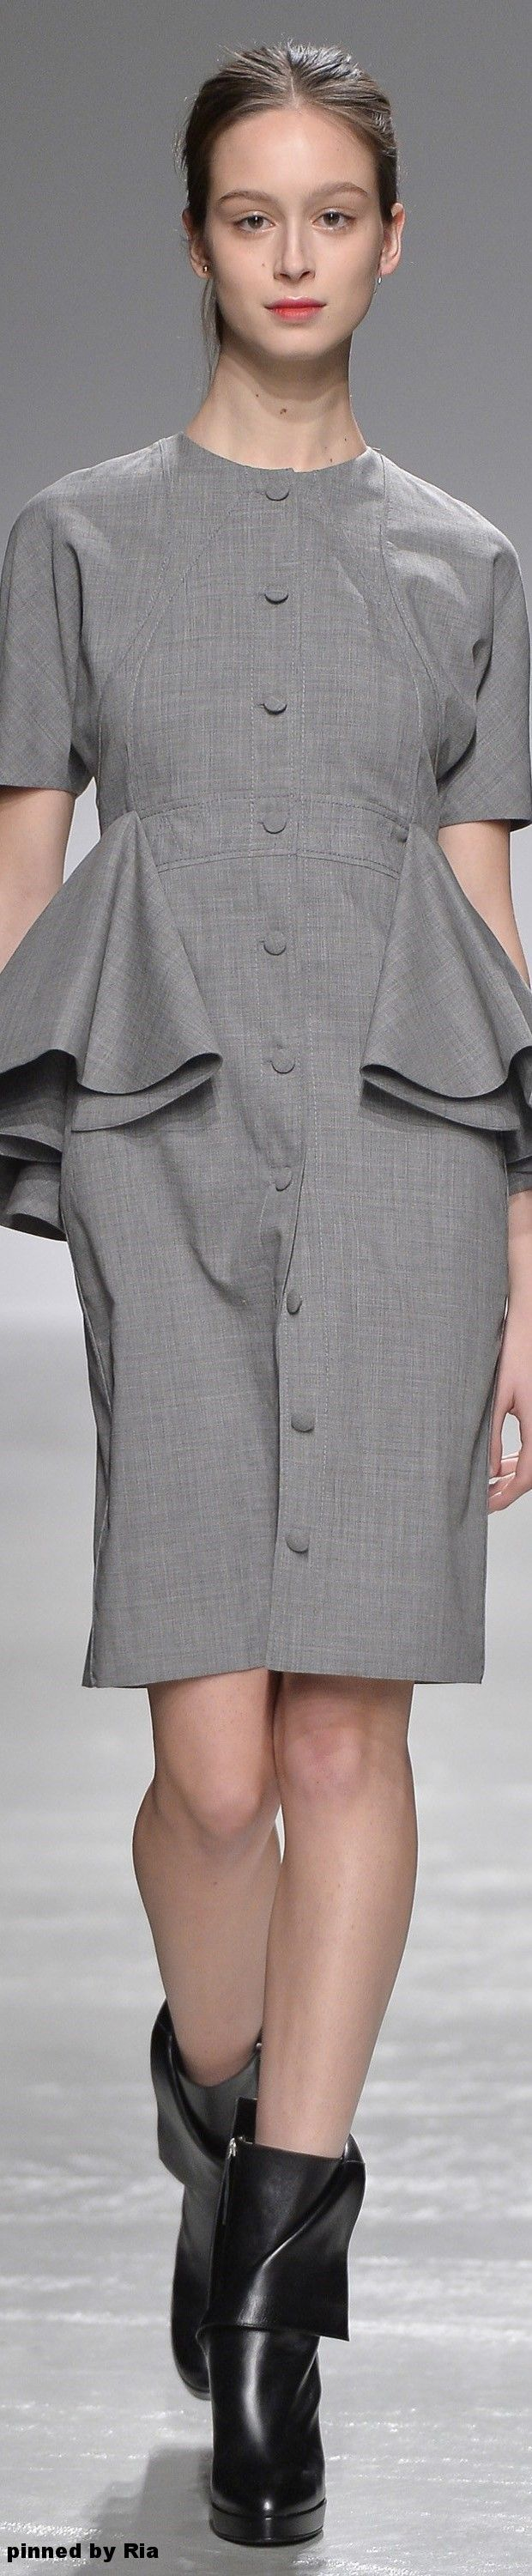 Guy Laroche Fall 2016 RTW l Ria